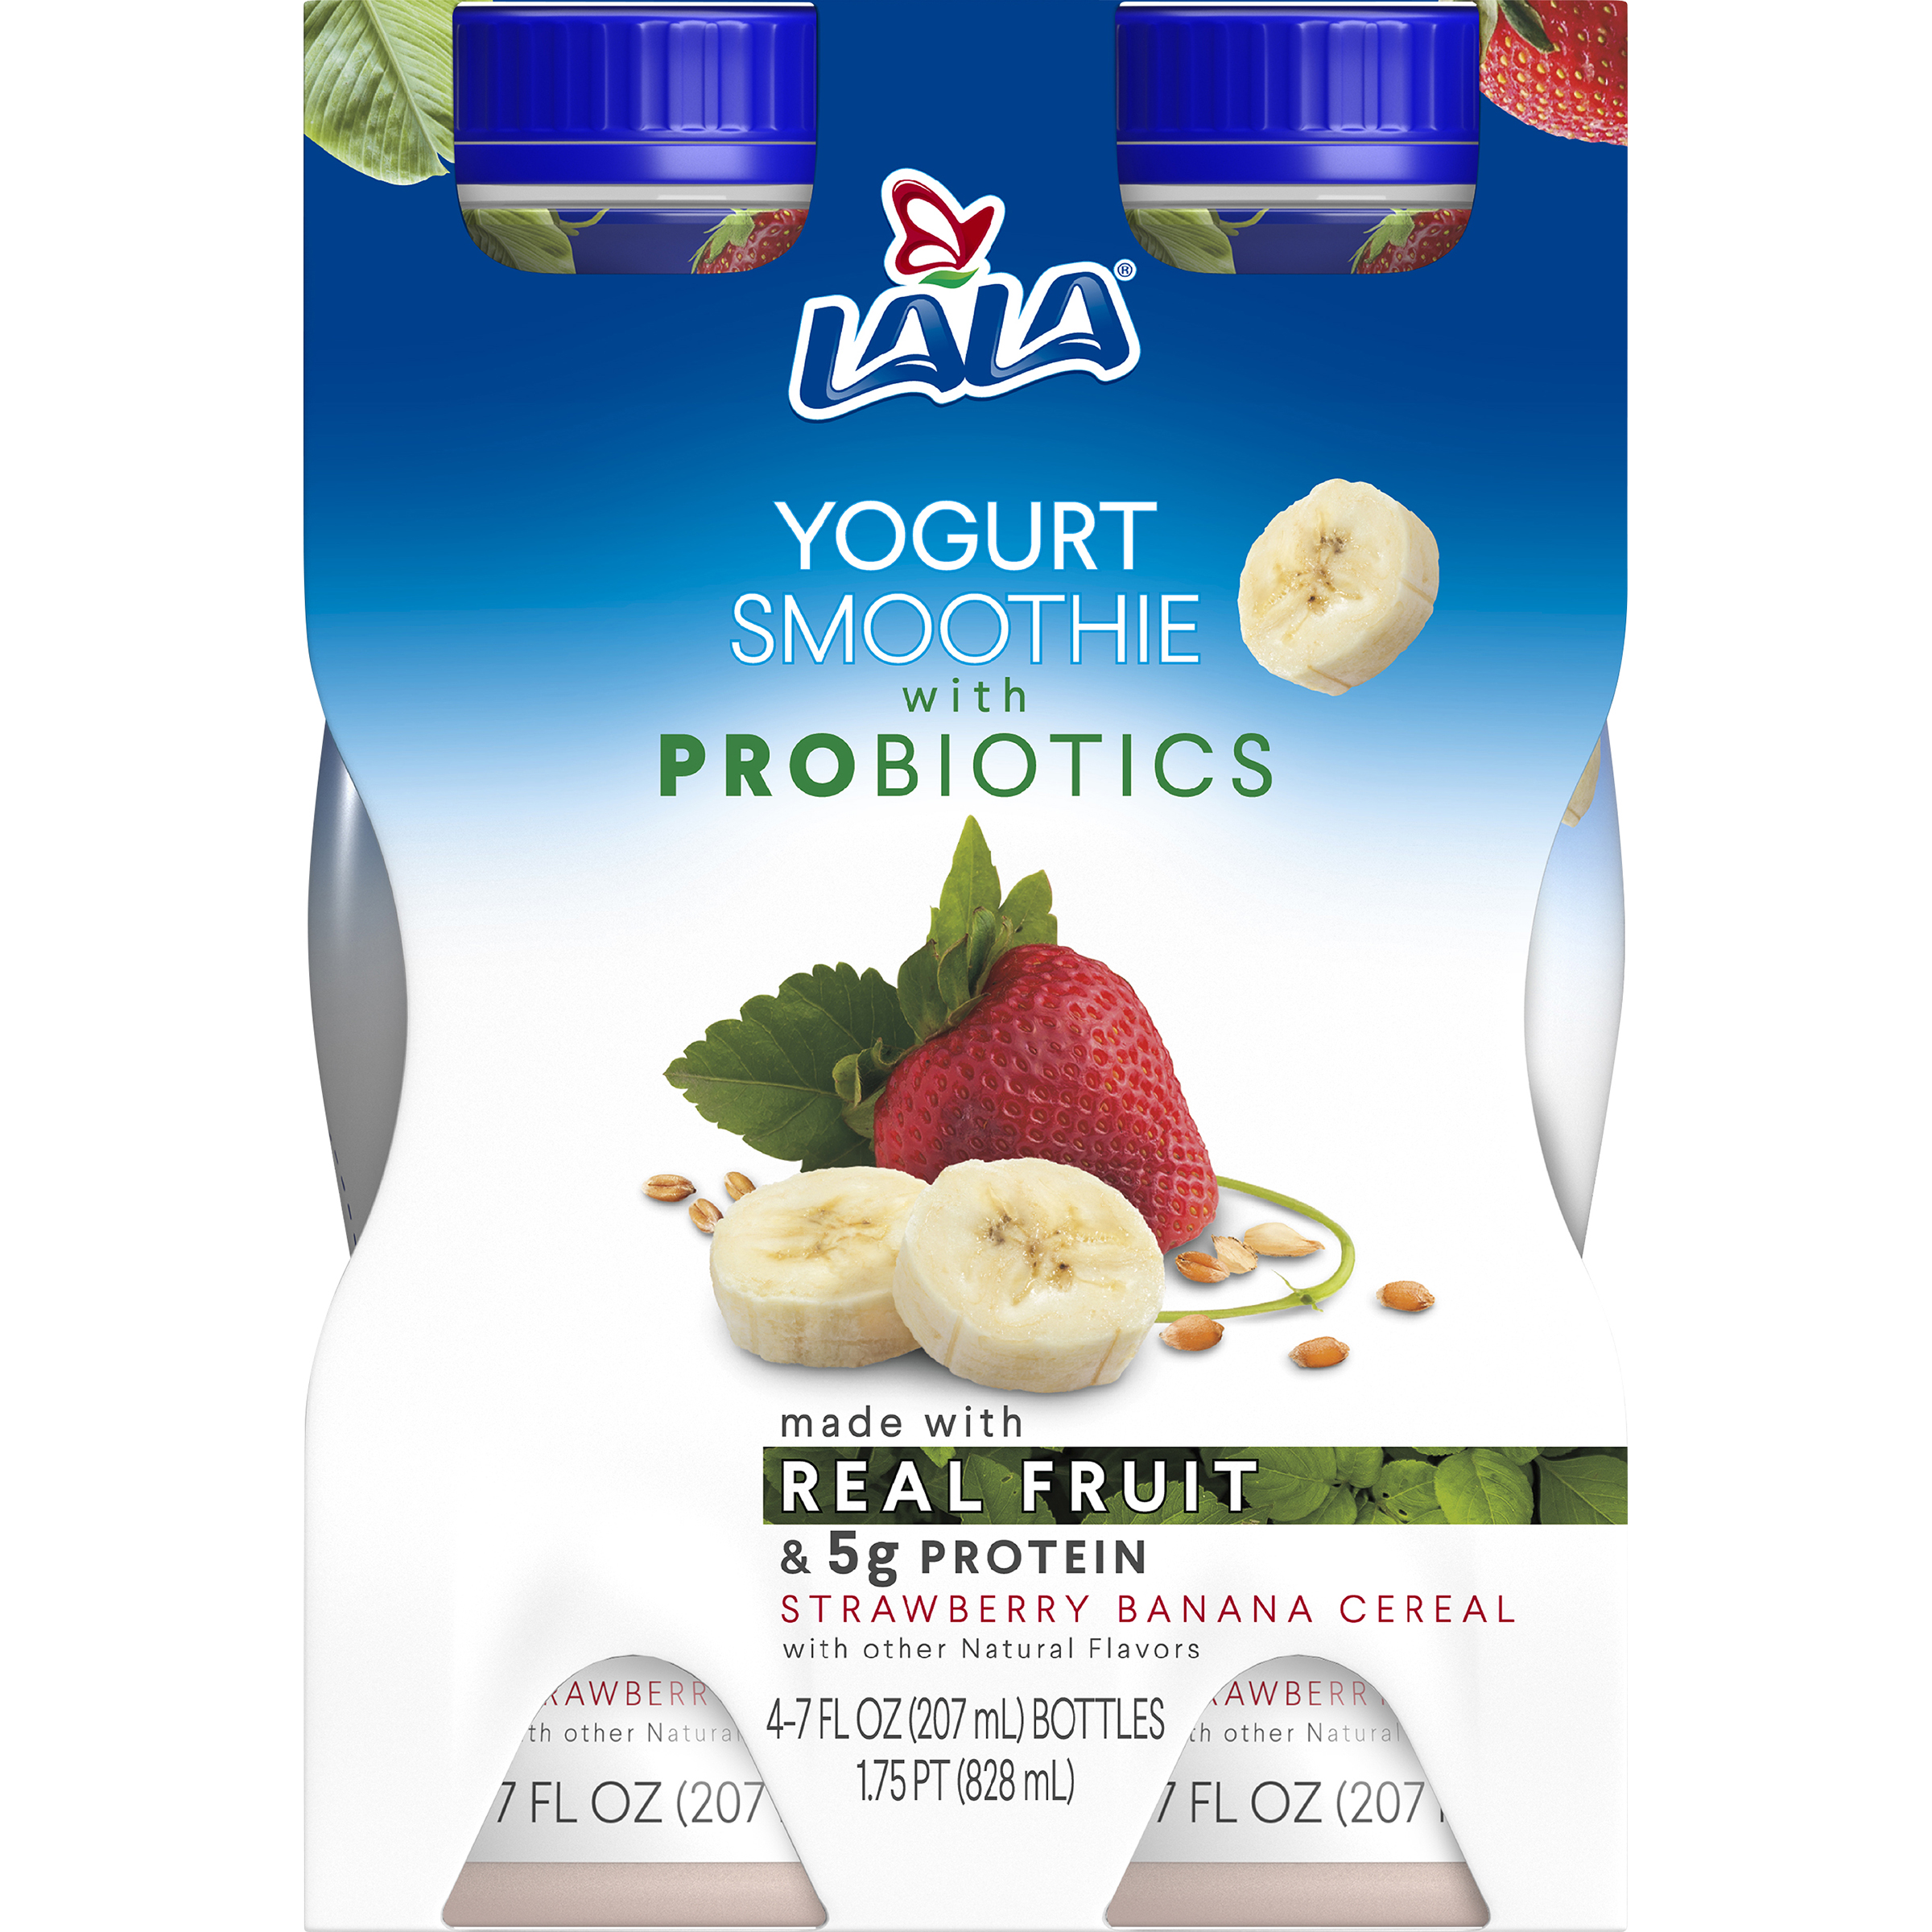 LALA Drinkable Yogurt Smoothie with Probiotics, 5g of Protein, Strawberry Banana Cereal, 7-Ounce Bottles (Pack of 4)